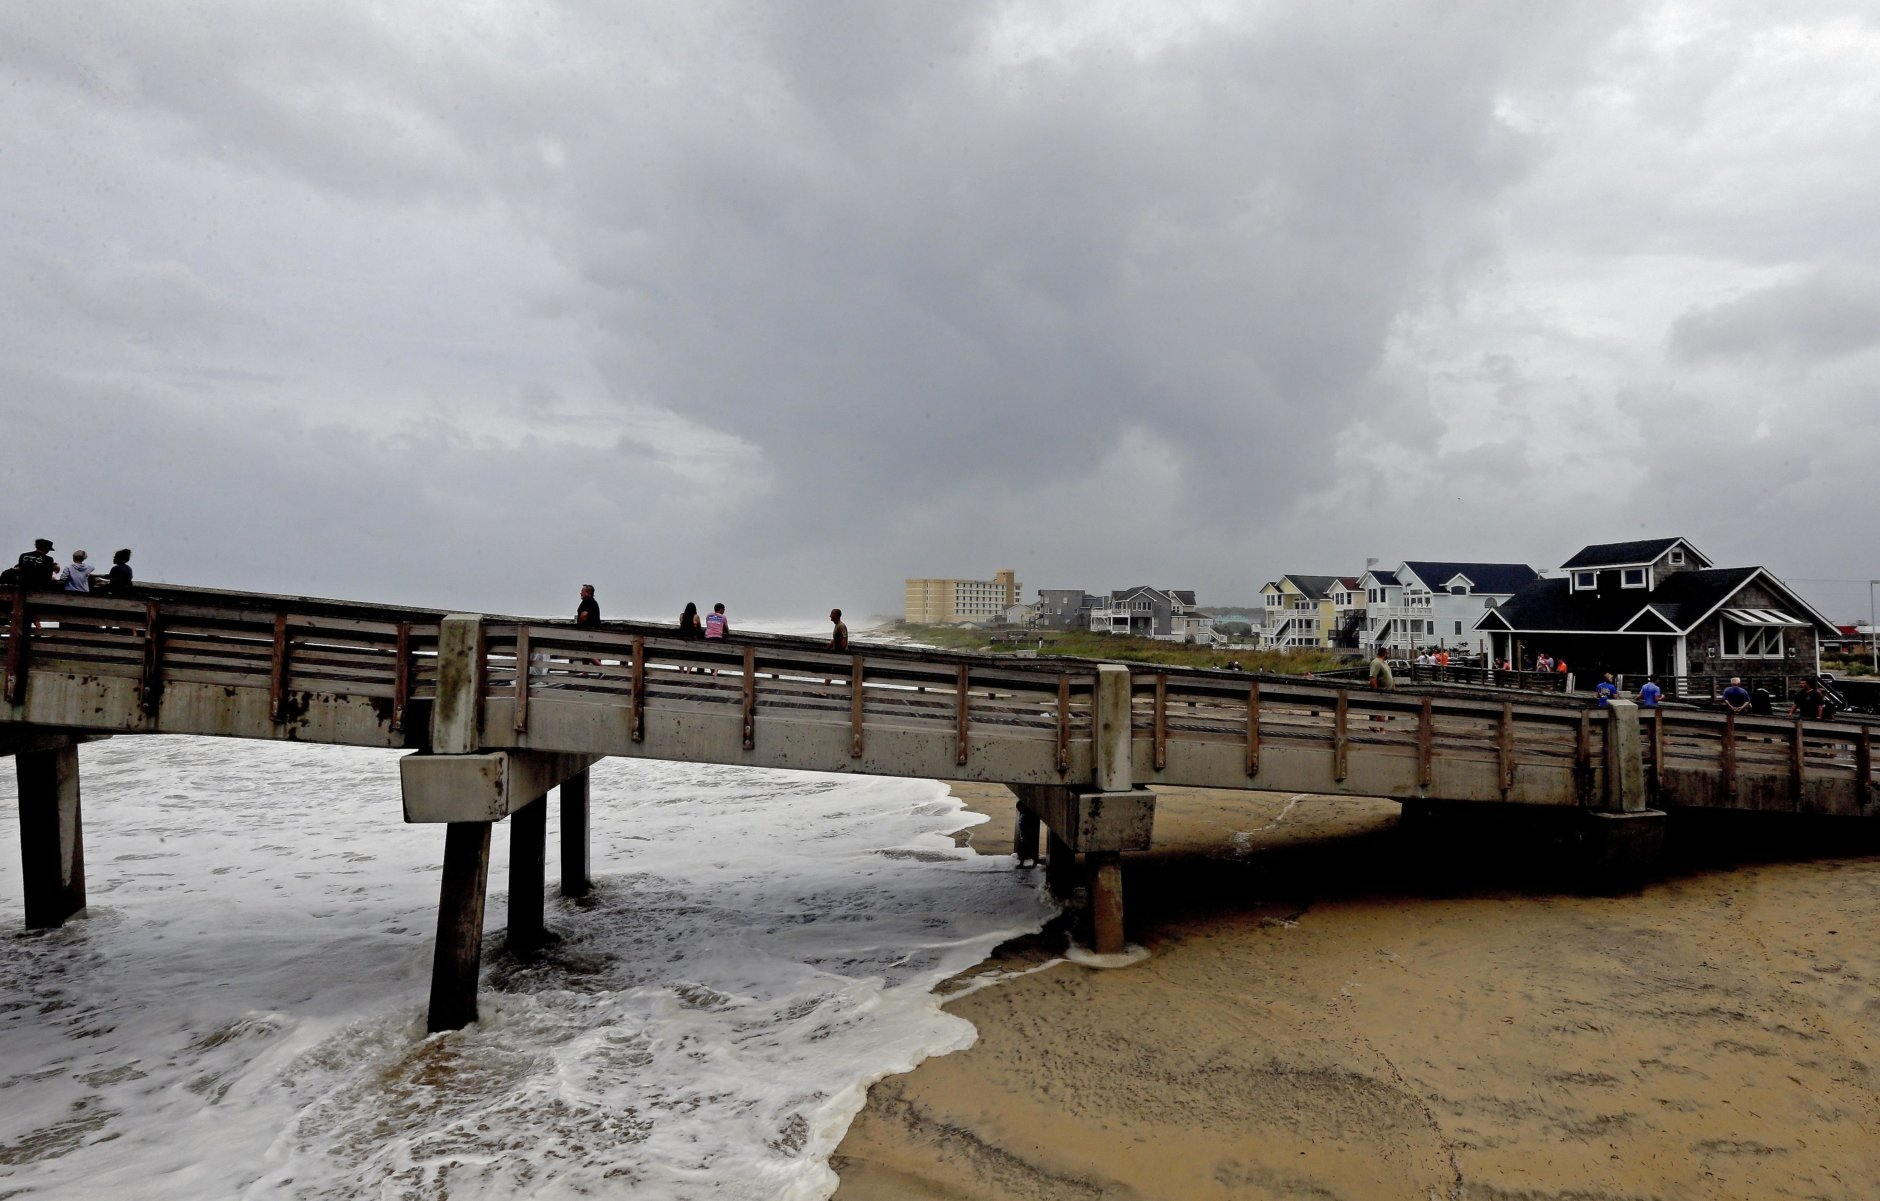 Heavy surf washes under Jennette's Pier in Nags Head, N.C., Thursday, Sept. 13, 2018 as Hurricane Florence approaches the east coast. (AP Photo/Gerry Broome)